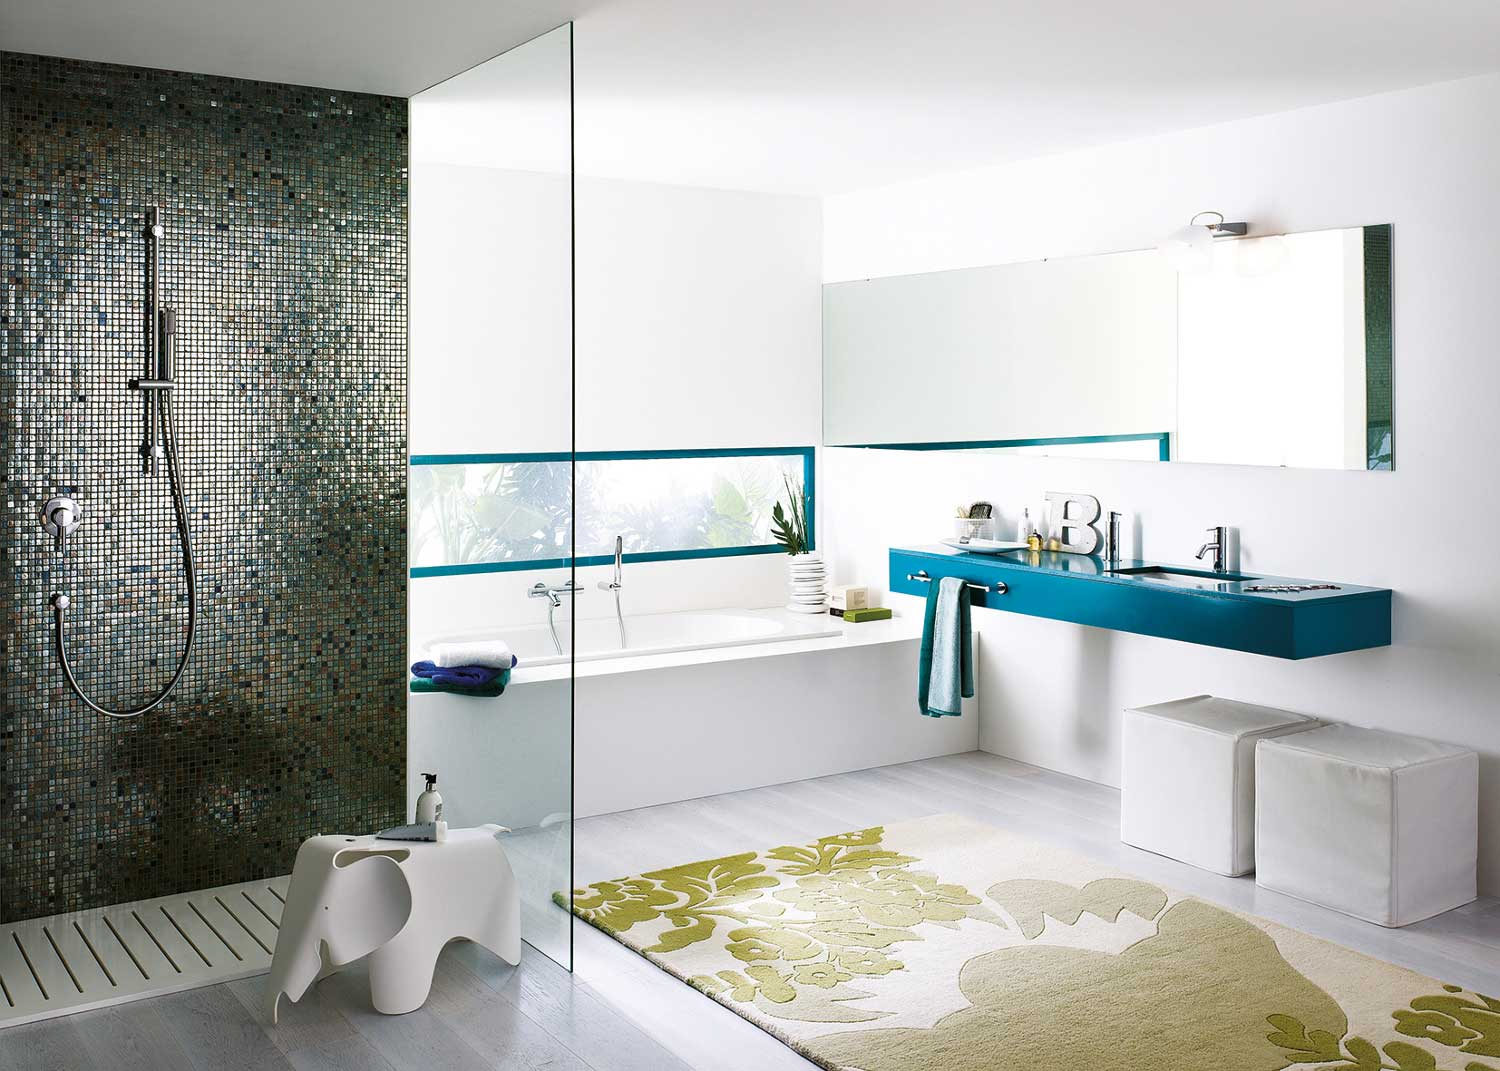 New hotel and residential bathroom accessories by Franke